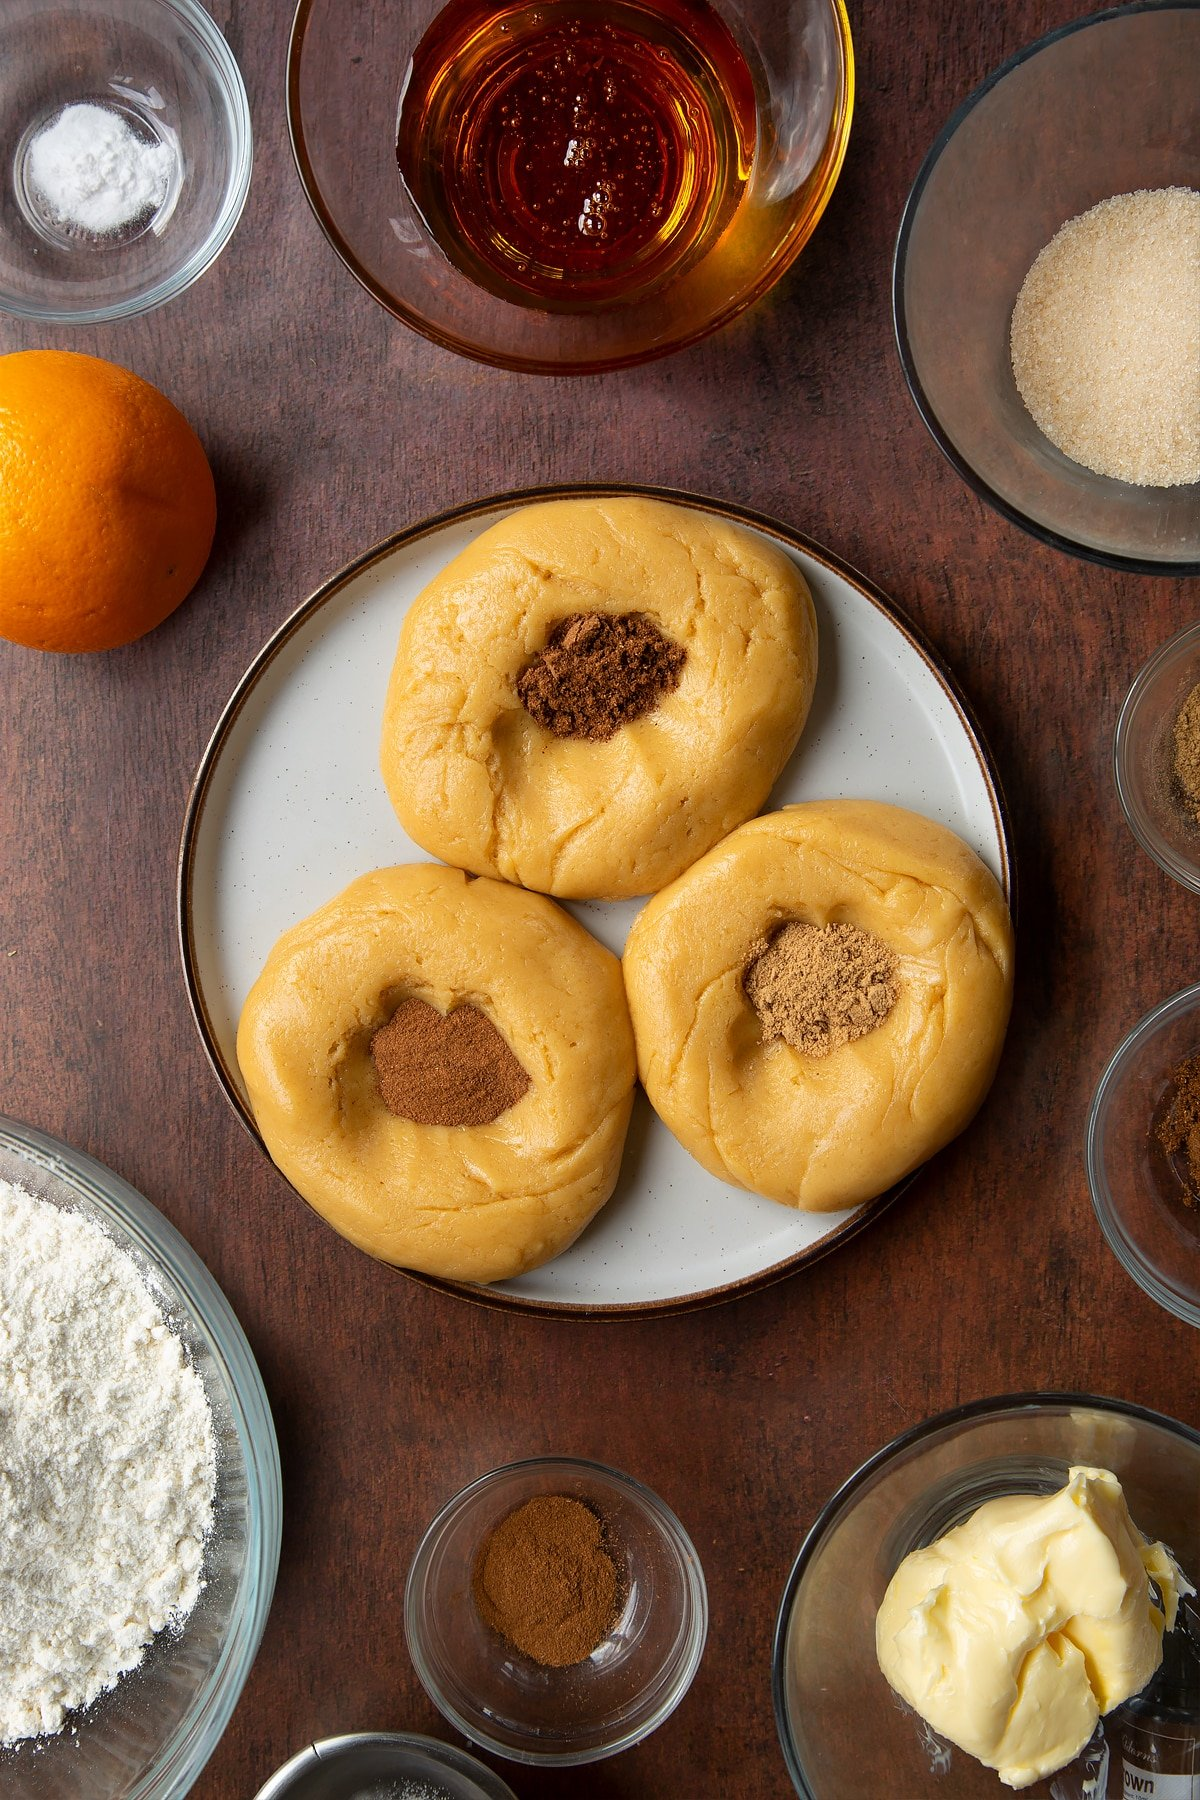 Three balls of cookie dough on a plate with spices on top of them. Ingredients to make autumn cookies surround the plate.